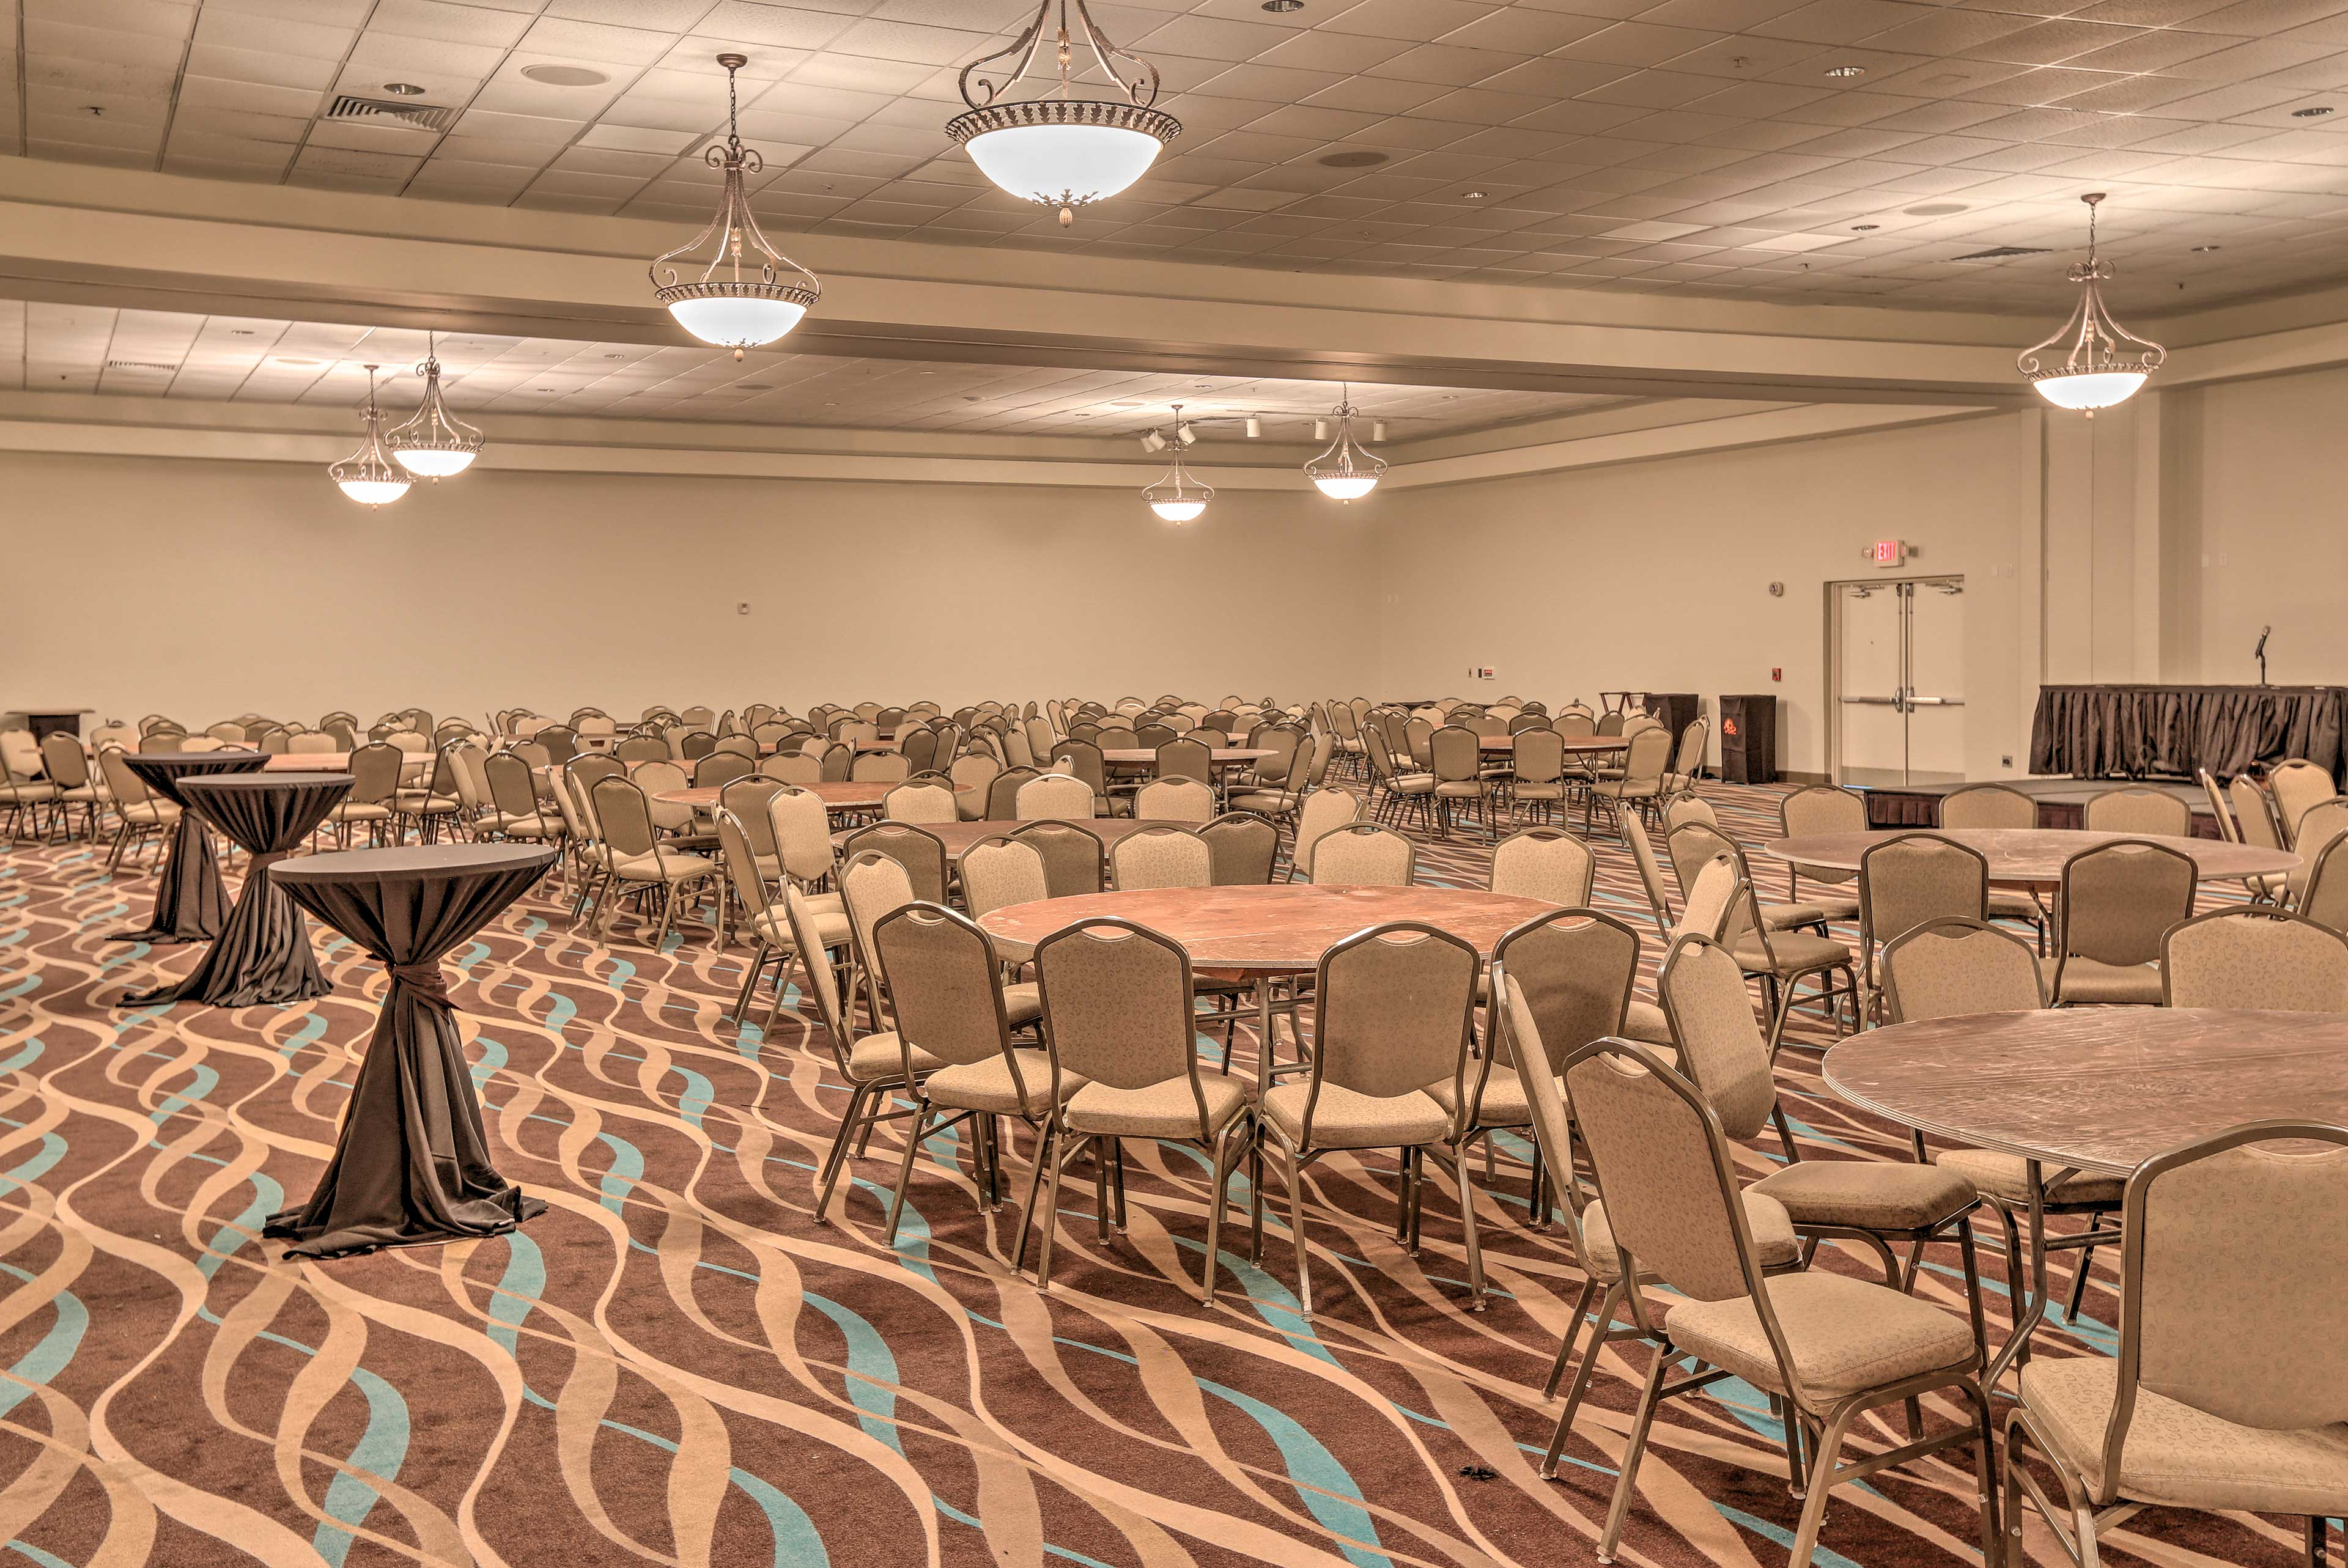 Host events in this community space.